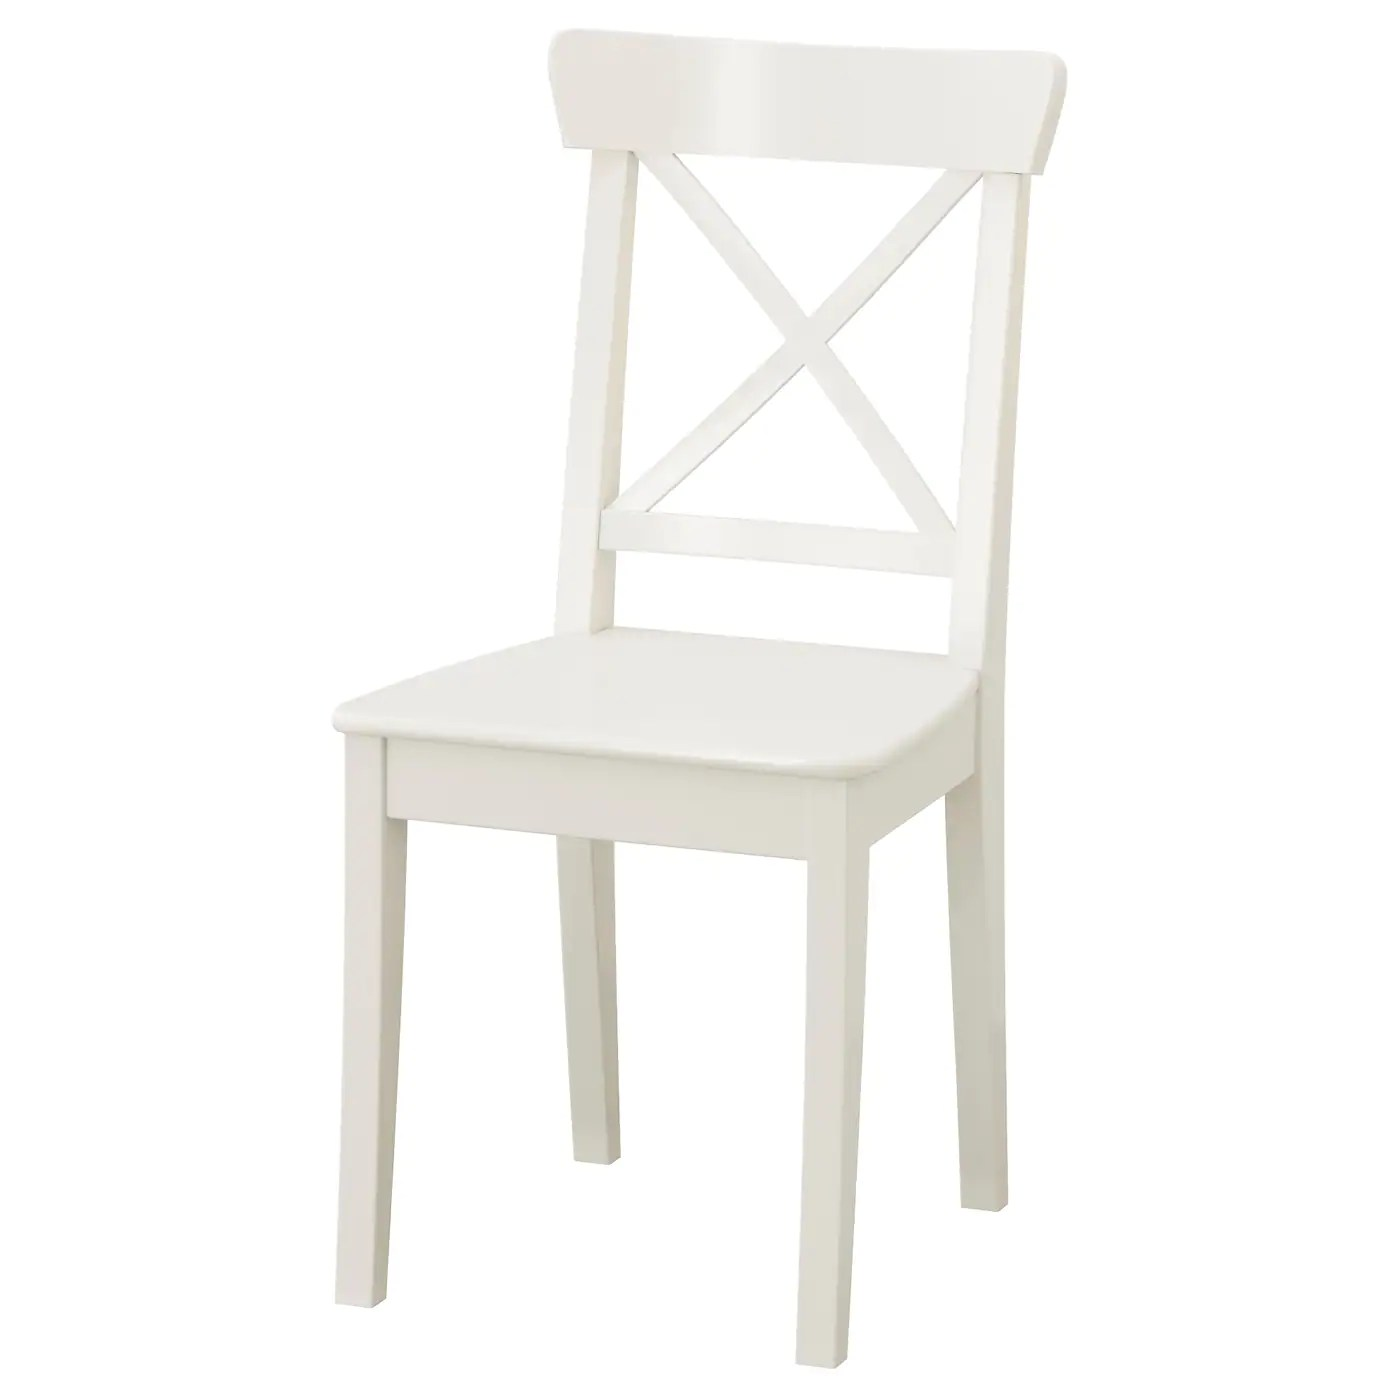 White Chair Ikea Ingolf Chair White Ikea